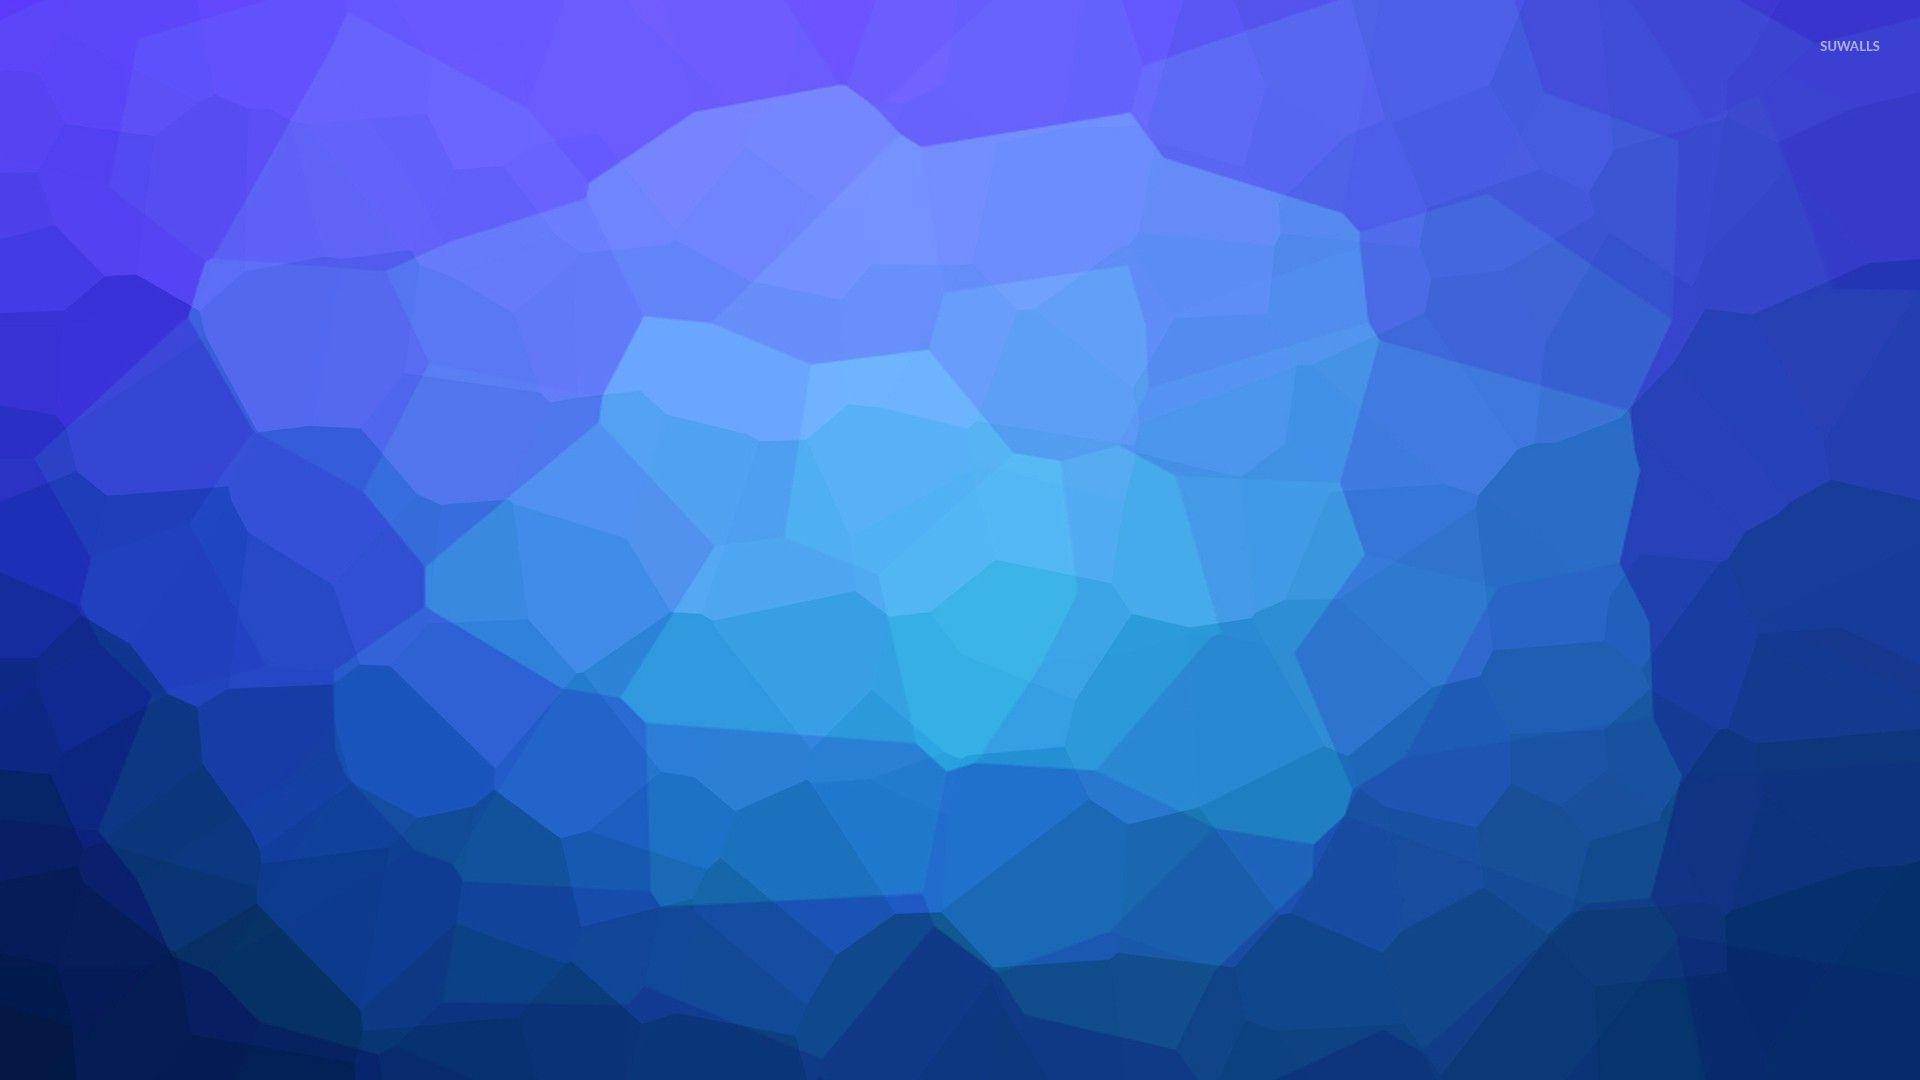 Light blue shapes in the middle of dark ones wallpaper